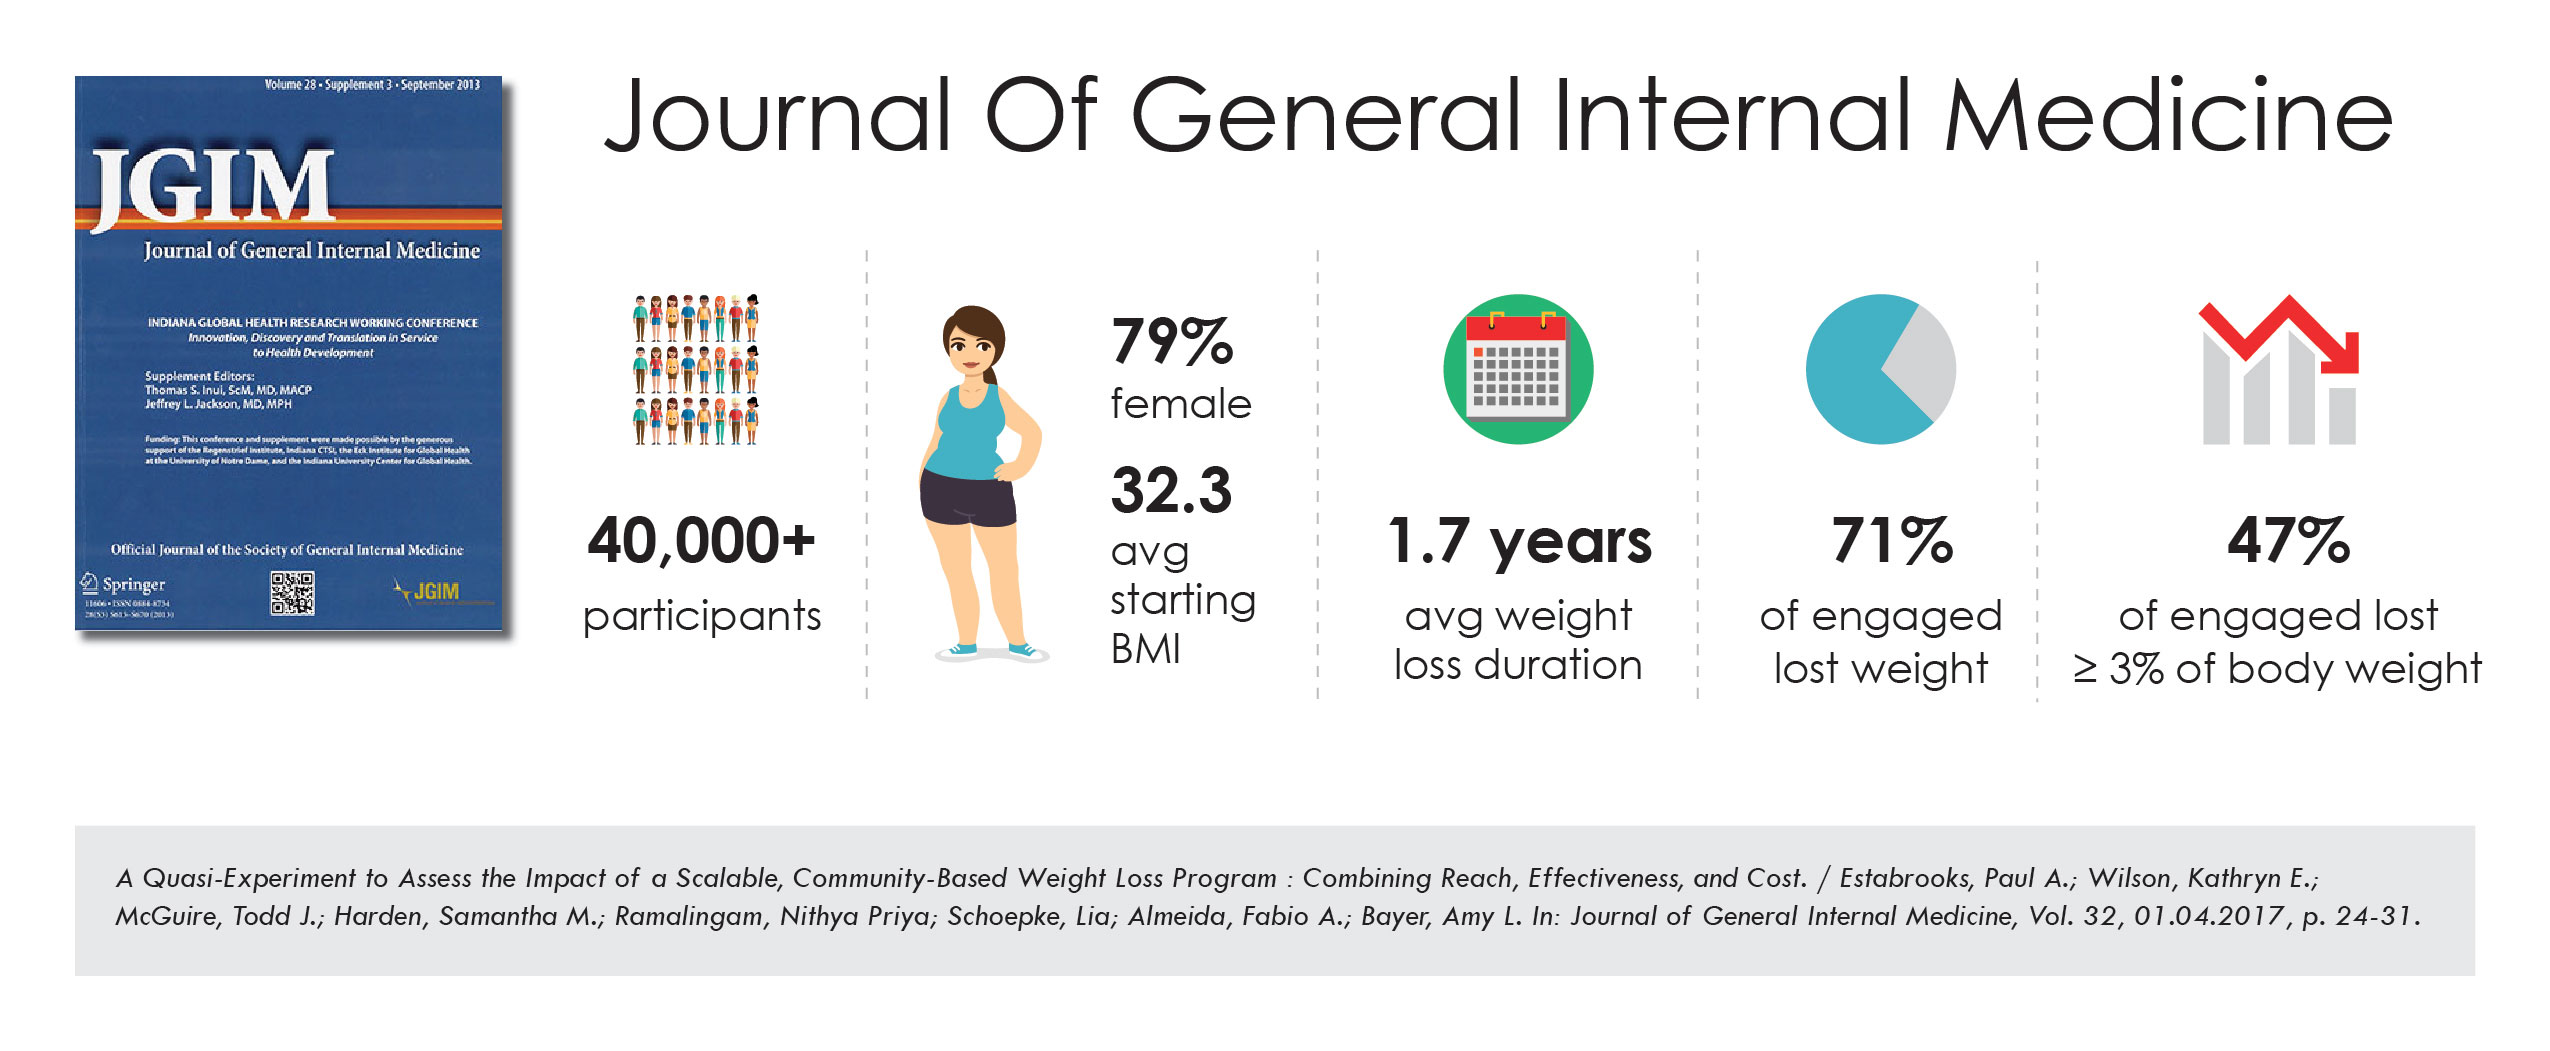 A study published in the Journal of General Internal Medicine found 71% of engaged participants in incentaHEALTH's community weight management program called Weigh and Win have reduced their BMI.